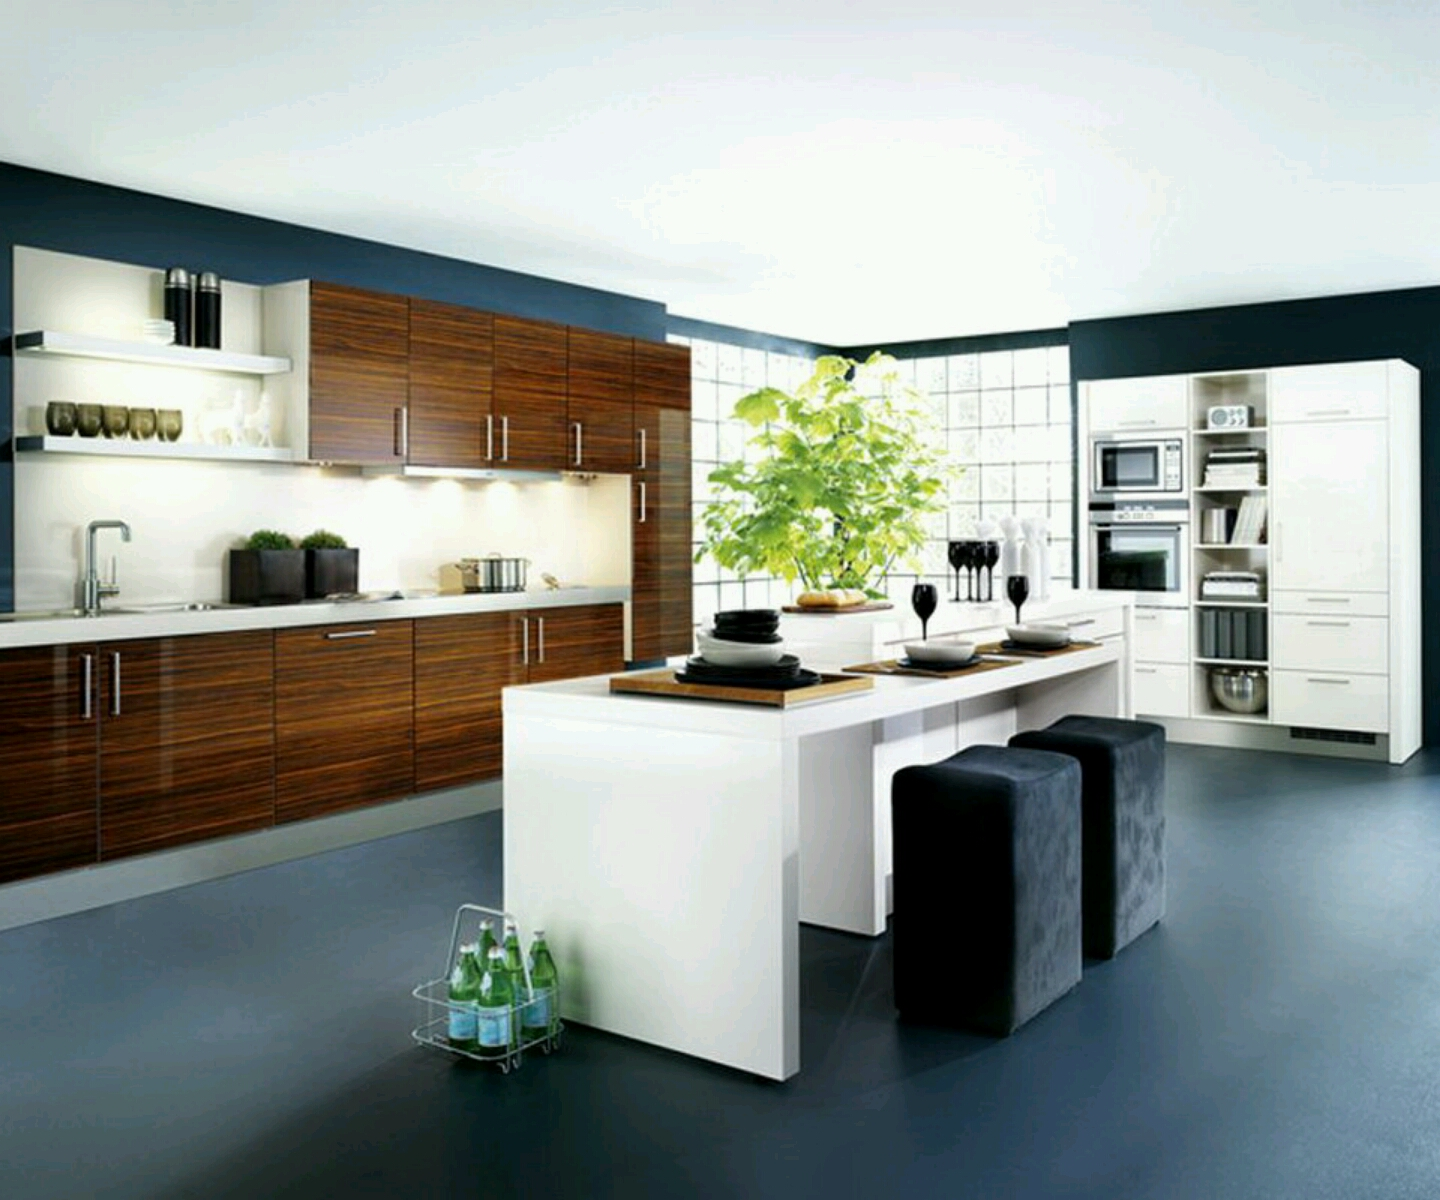 New home designs latest kitchen cabinets designs modern for New modern kitchen pictures